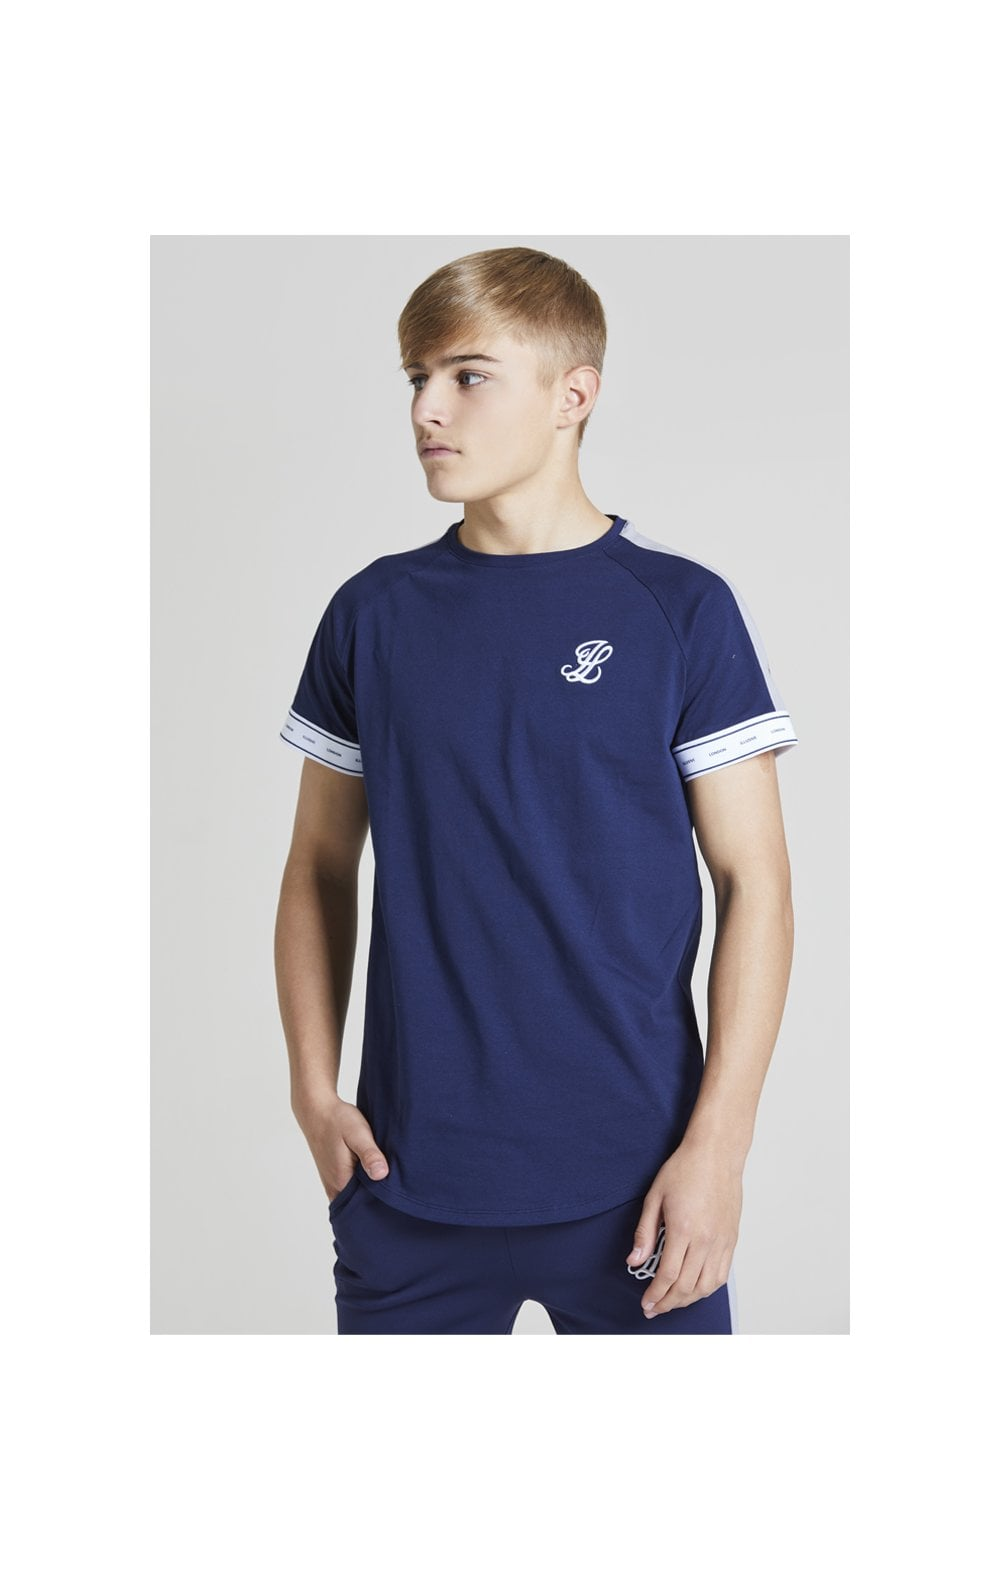 Illusive London Panel Tech Tee - Navy & Grey (1)